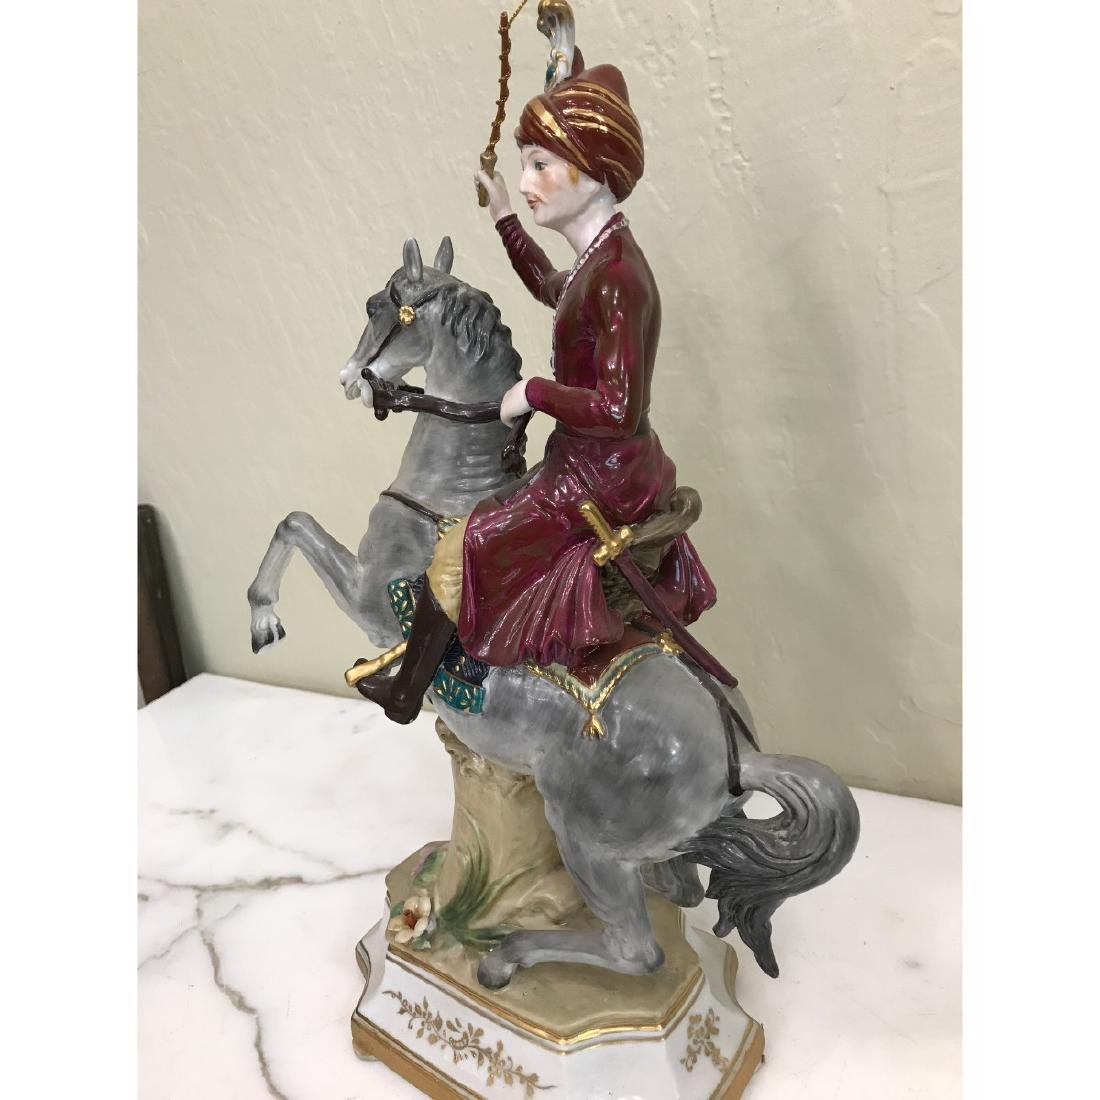 Porcelain Statue of Soldier on Horse - 7